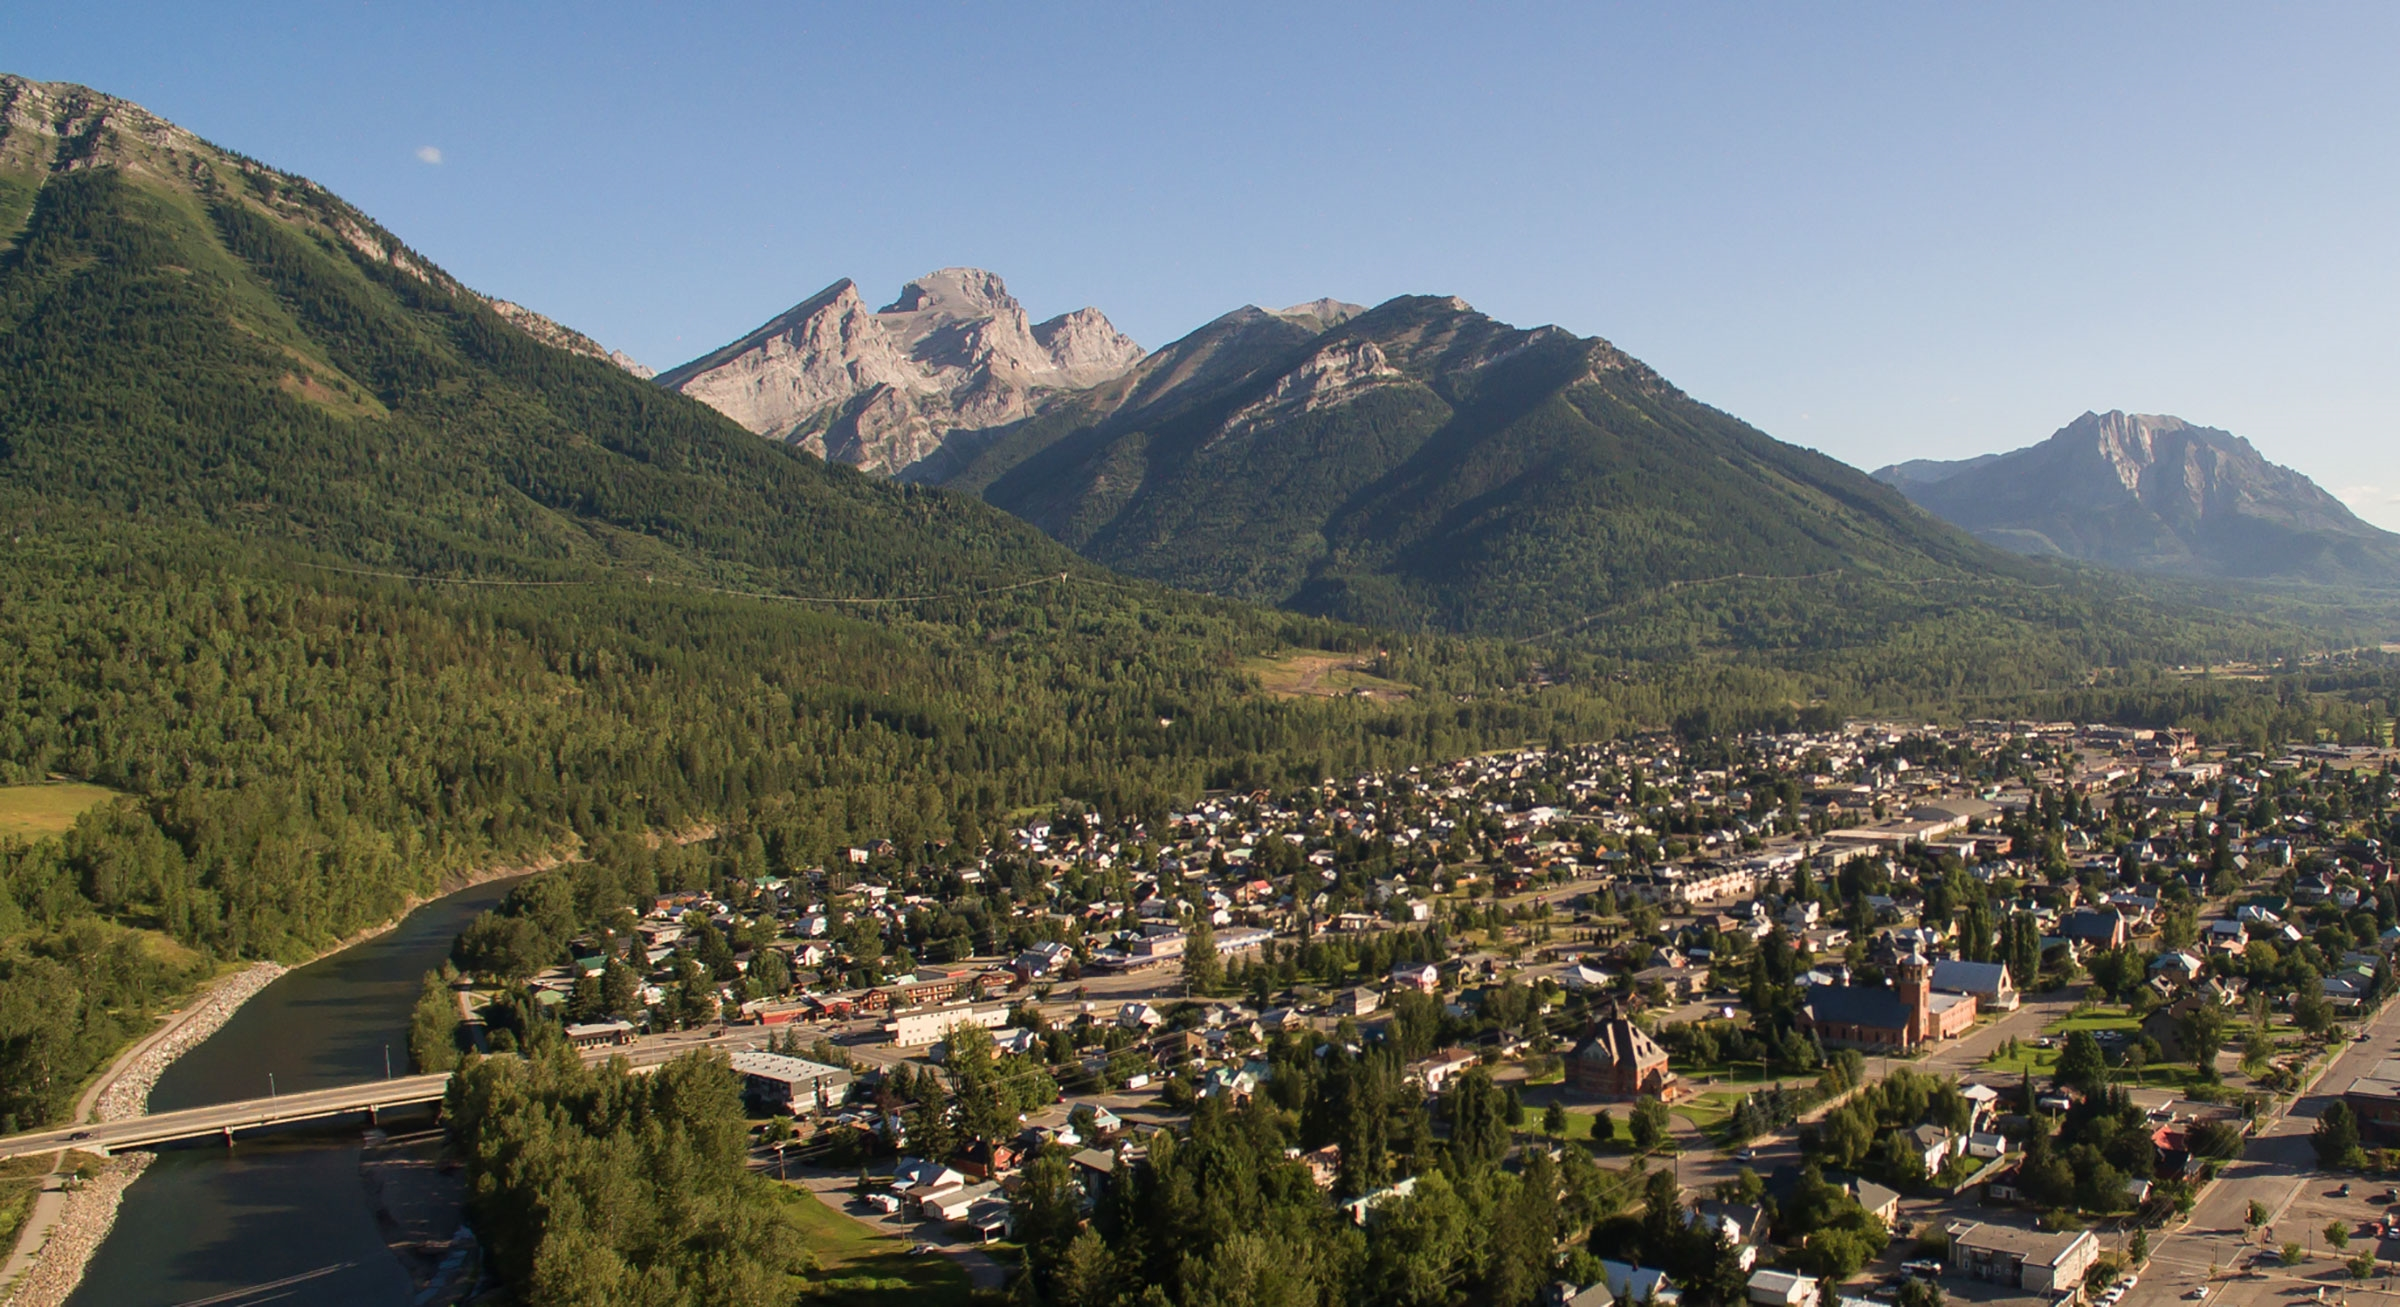 Official travel website for Fernie, British Columbia, Canada.